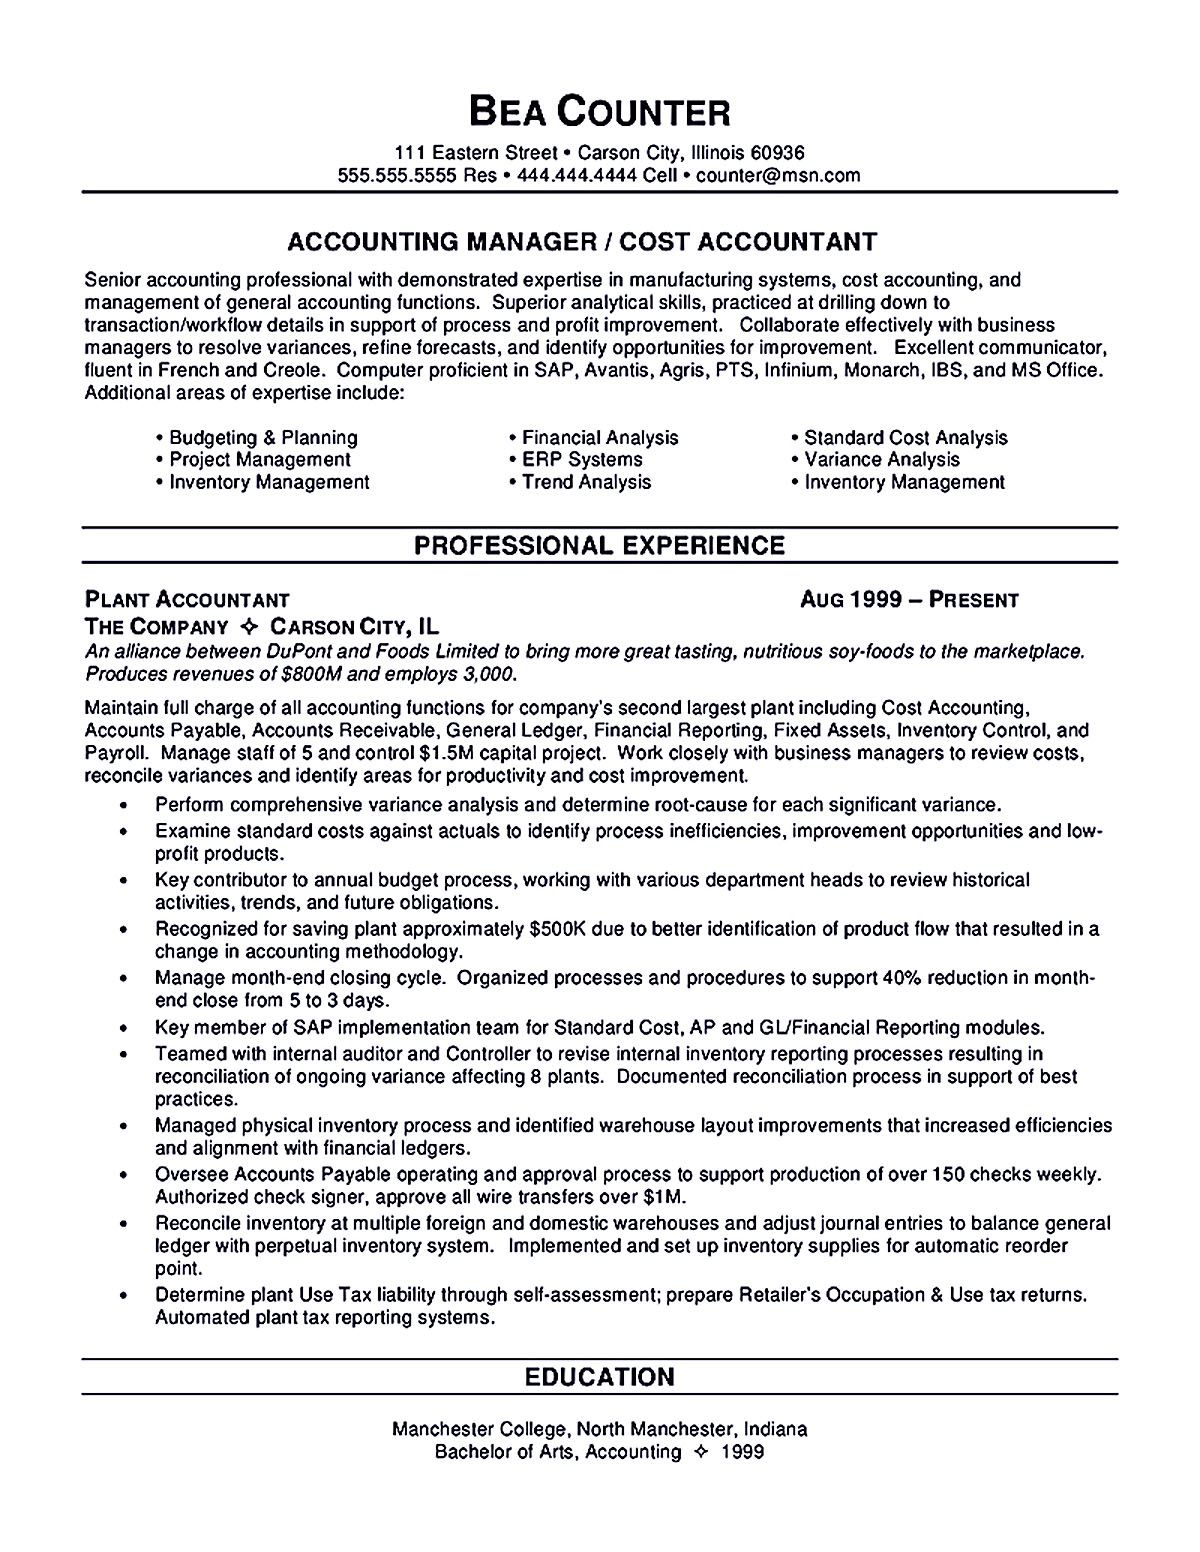 Resume Template For Accountant Accounts Payable Resume Template Accountant Resume